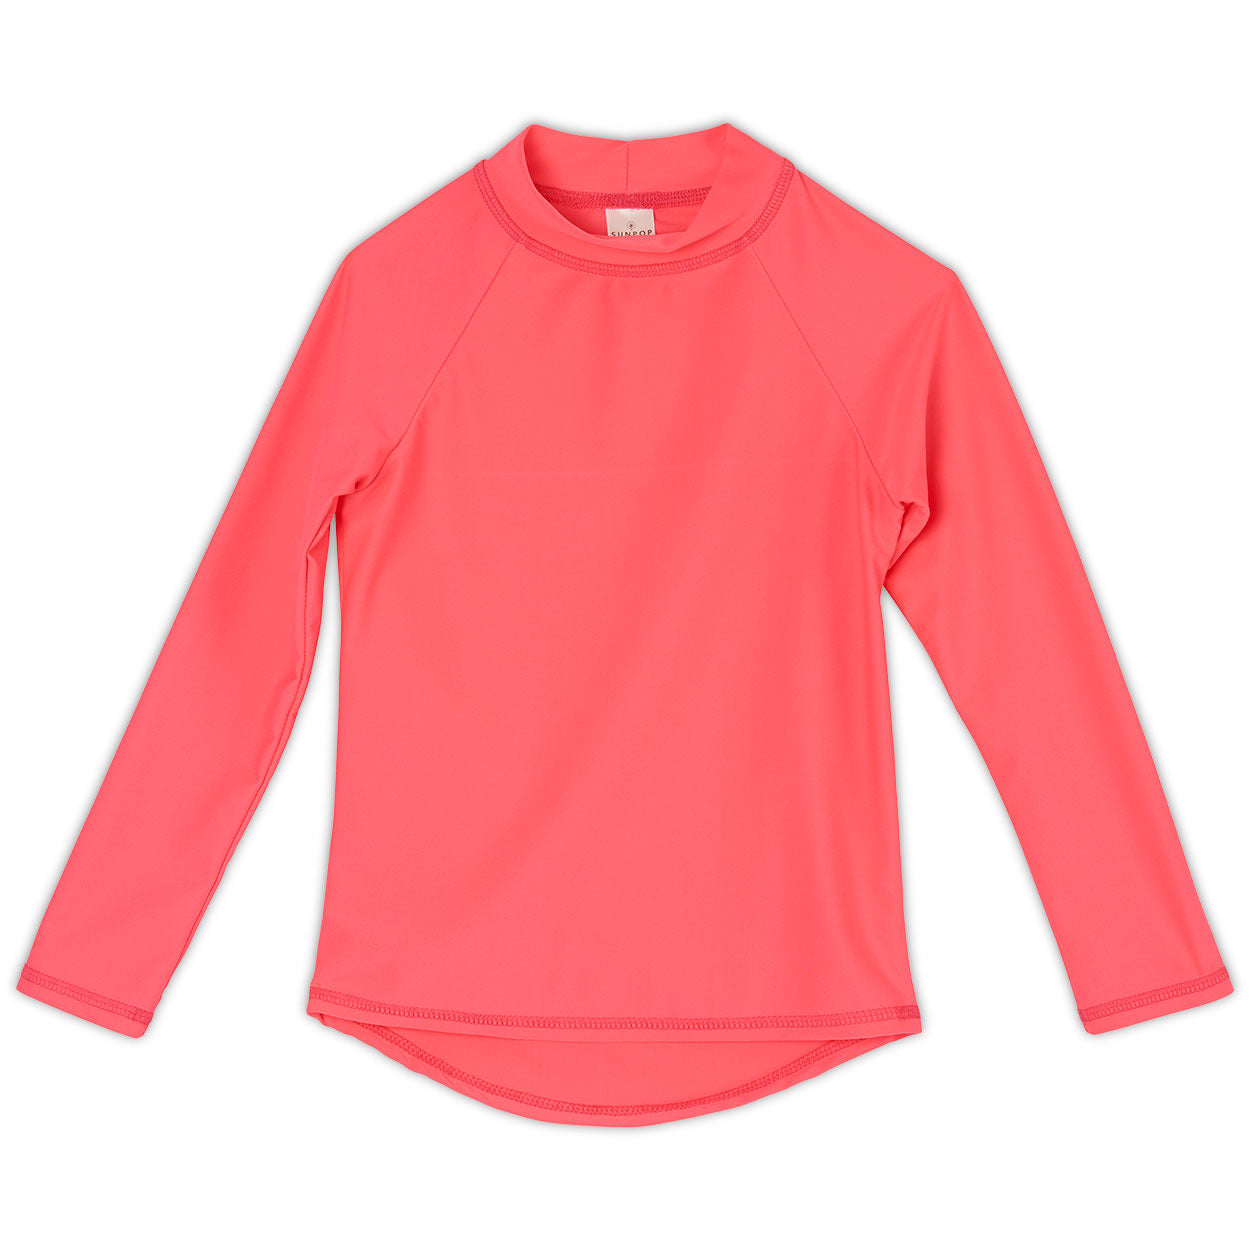 Coral Girls Long Sleeve Rash Guard Top UPF 50+